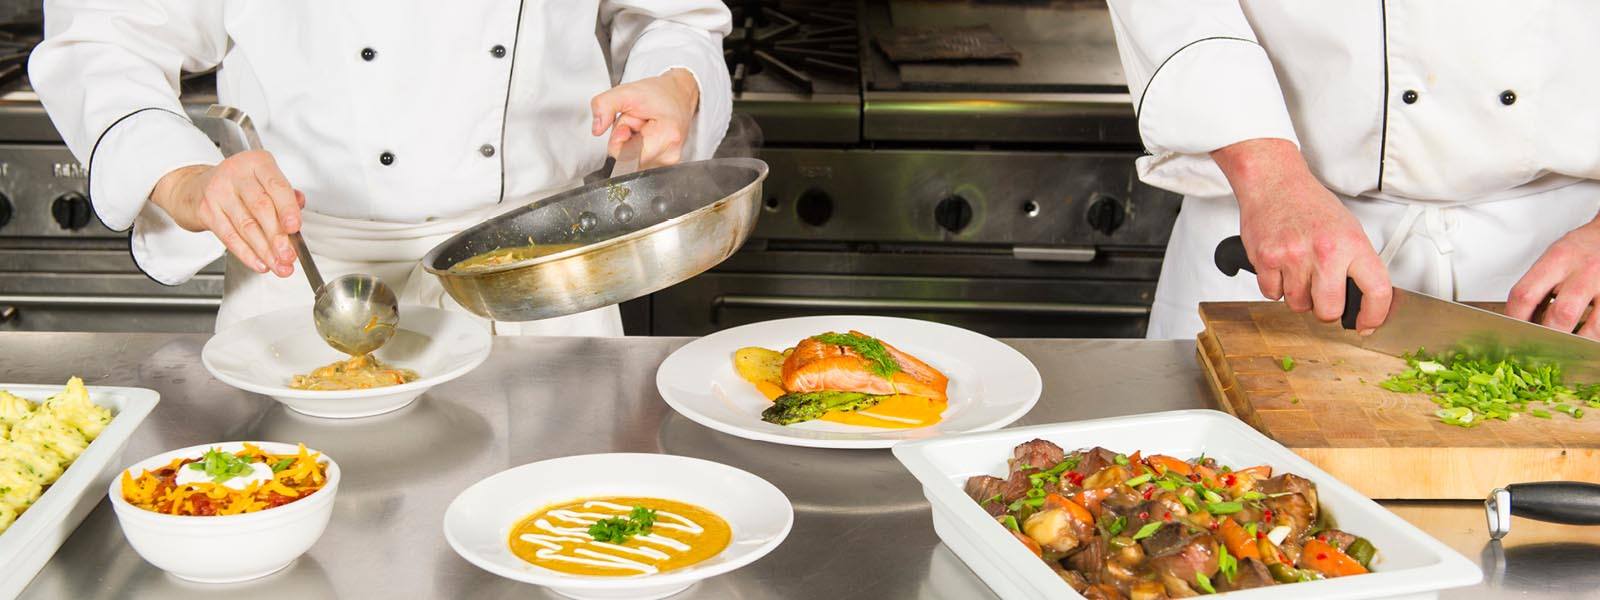 Chefs plating dishes in restaurant web